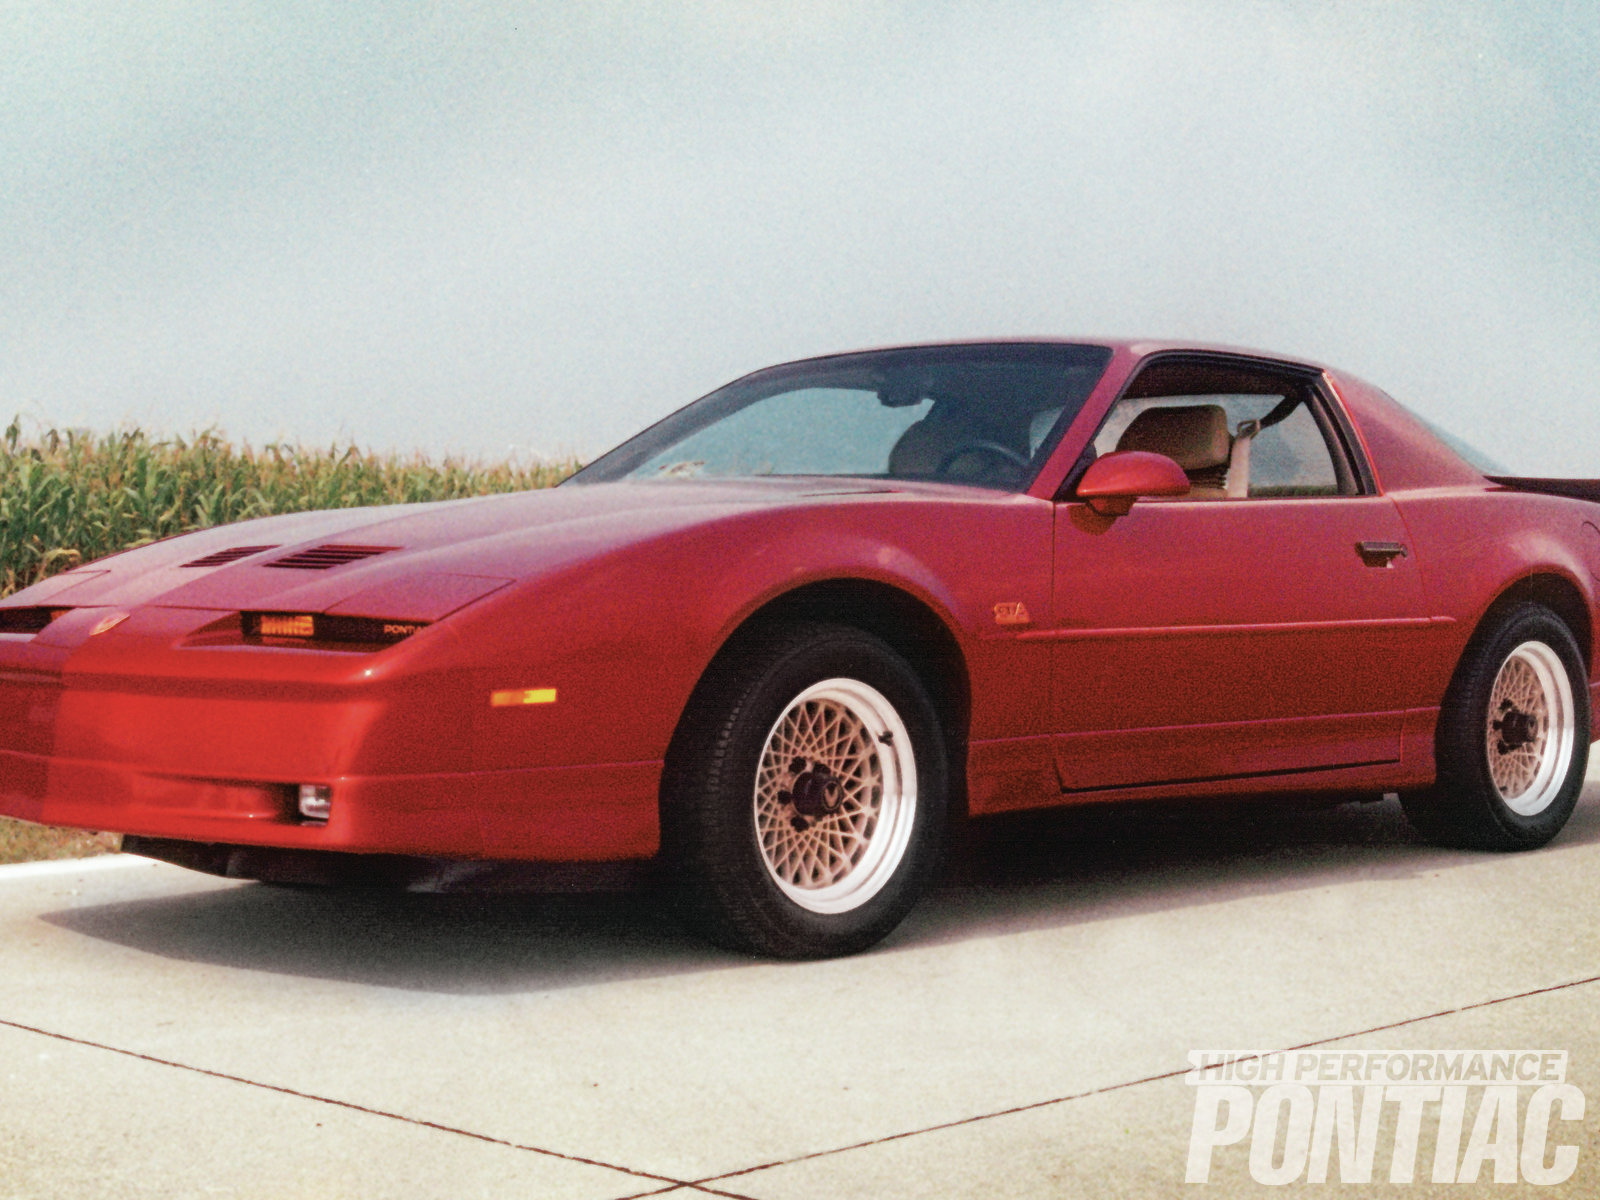 ... Pontiac Firebird Trans Am GTA Coupe 1987